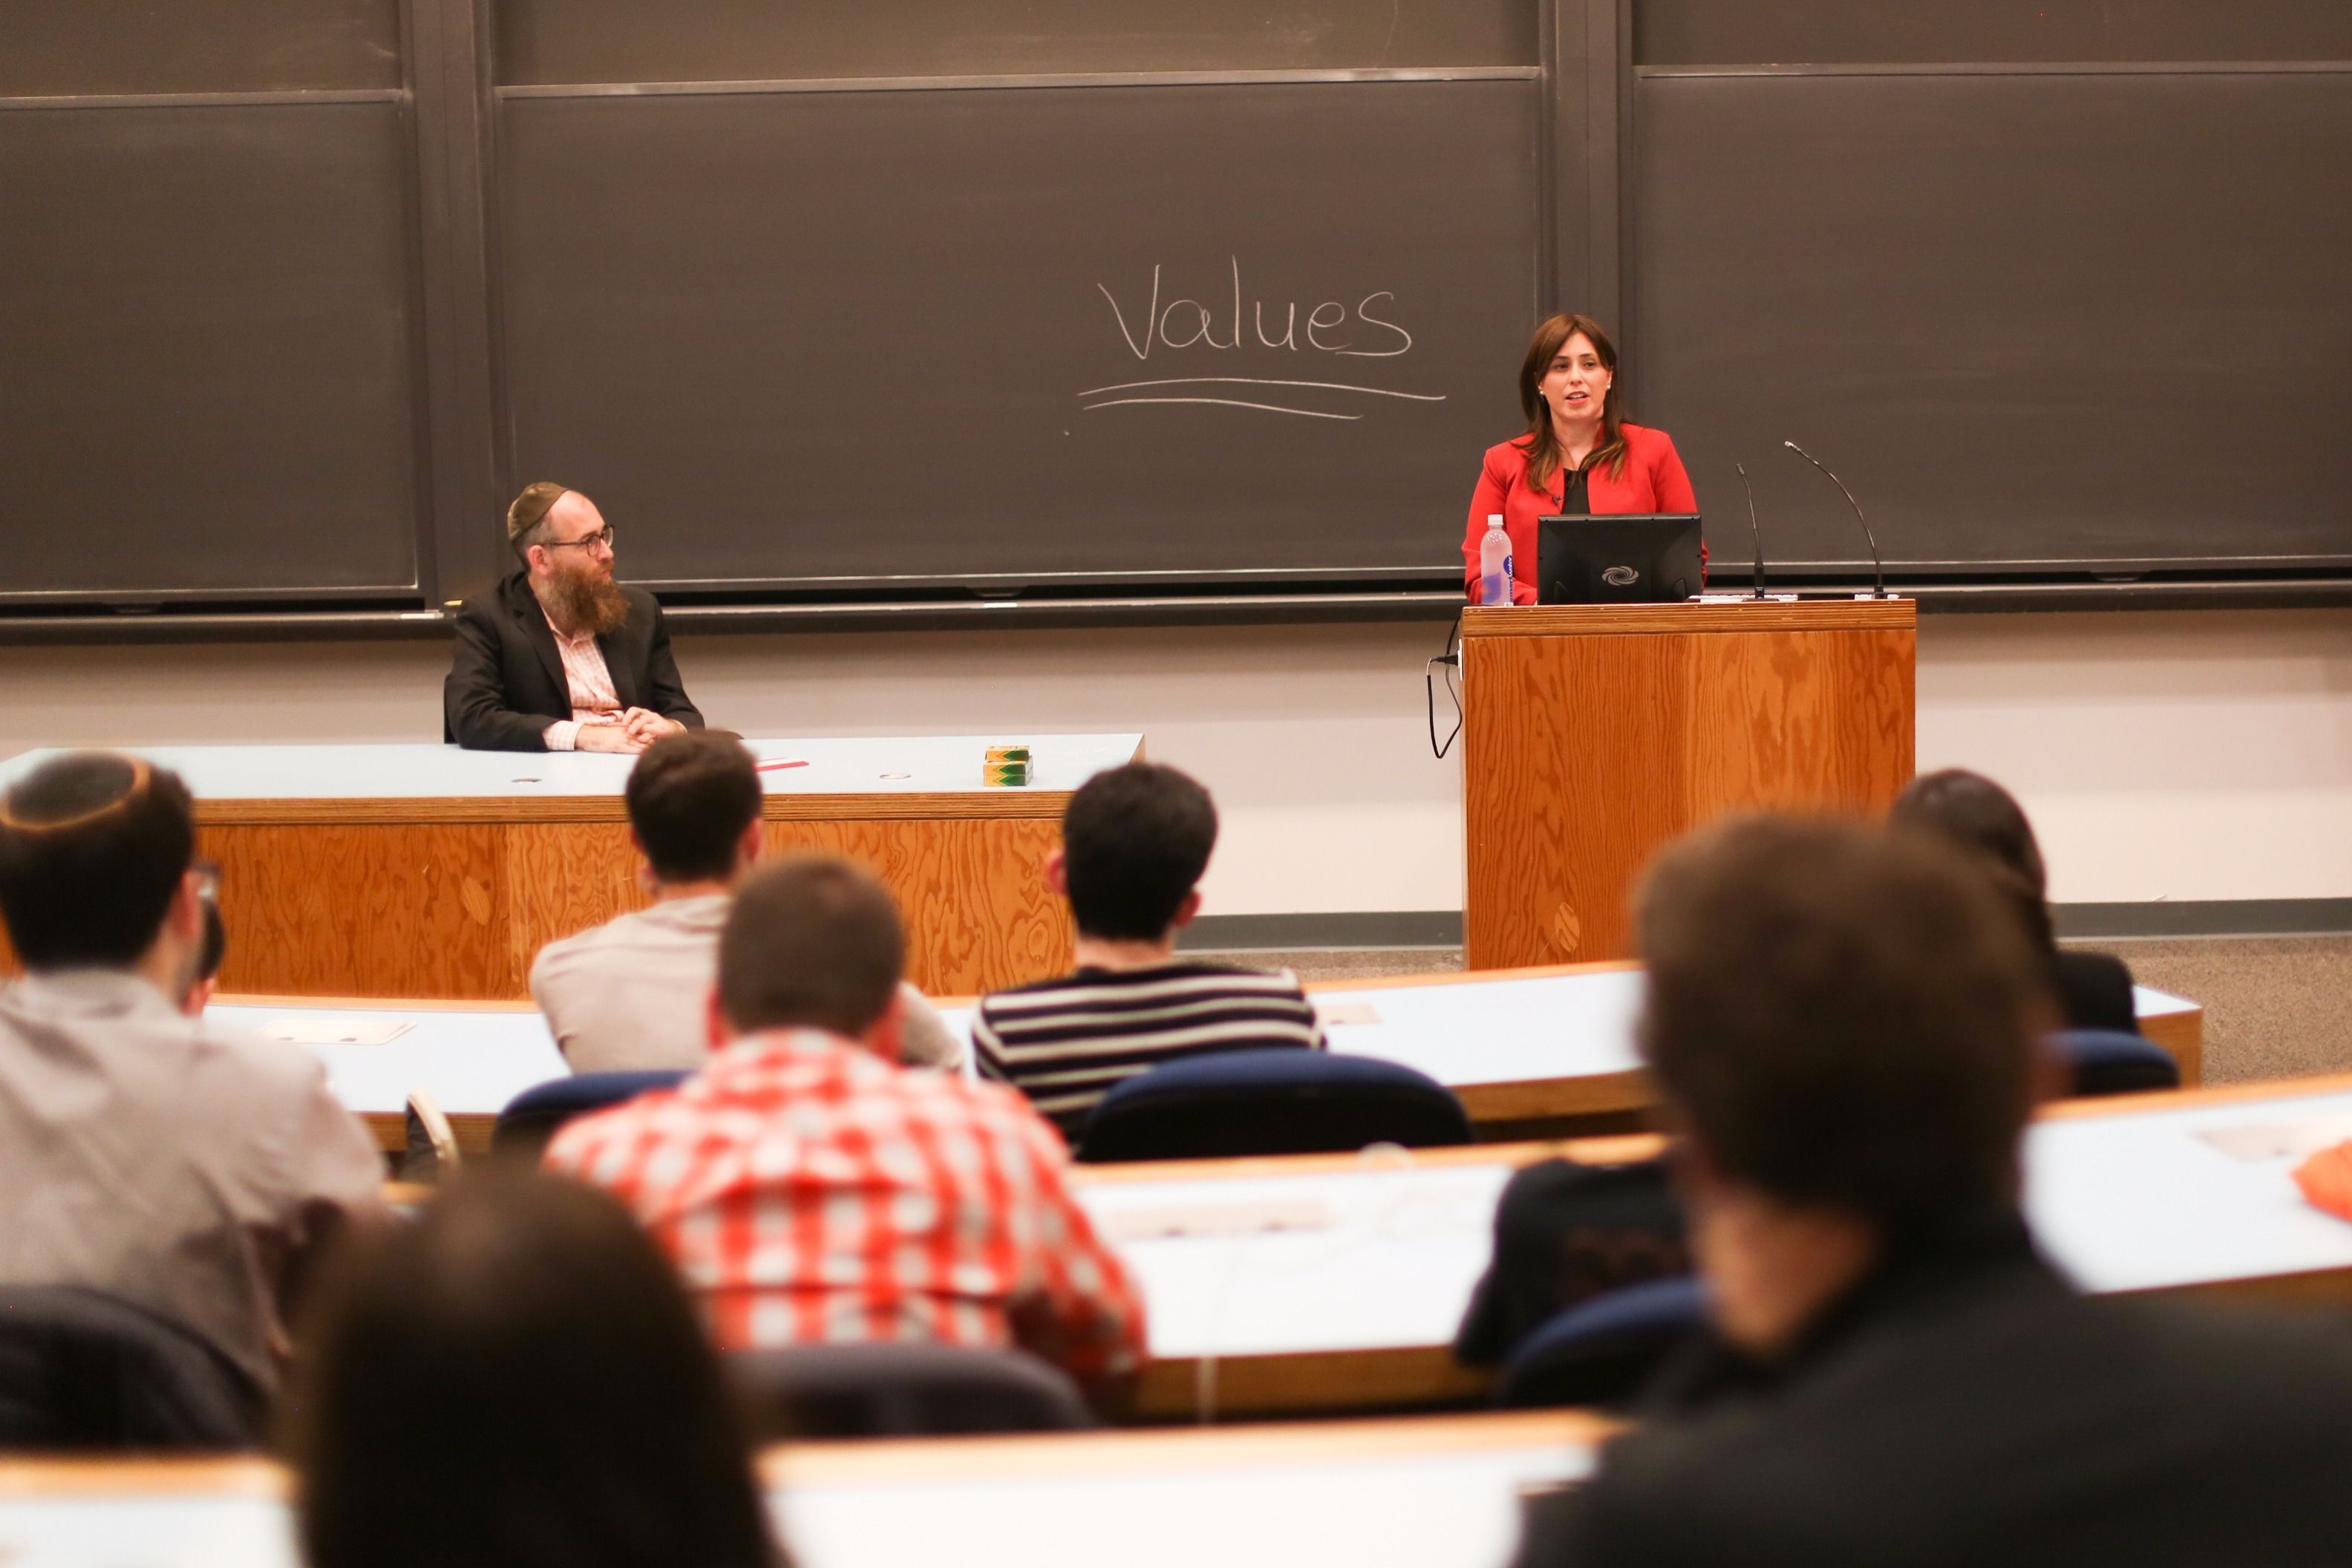 Israeli Deputy Foreign Minister Tzipi Hotovely speaks at an event sponsored by Chabad at Princeton University.